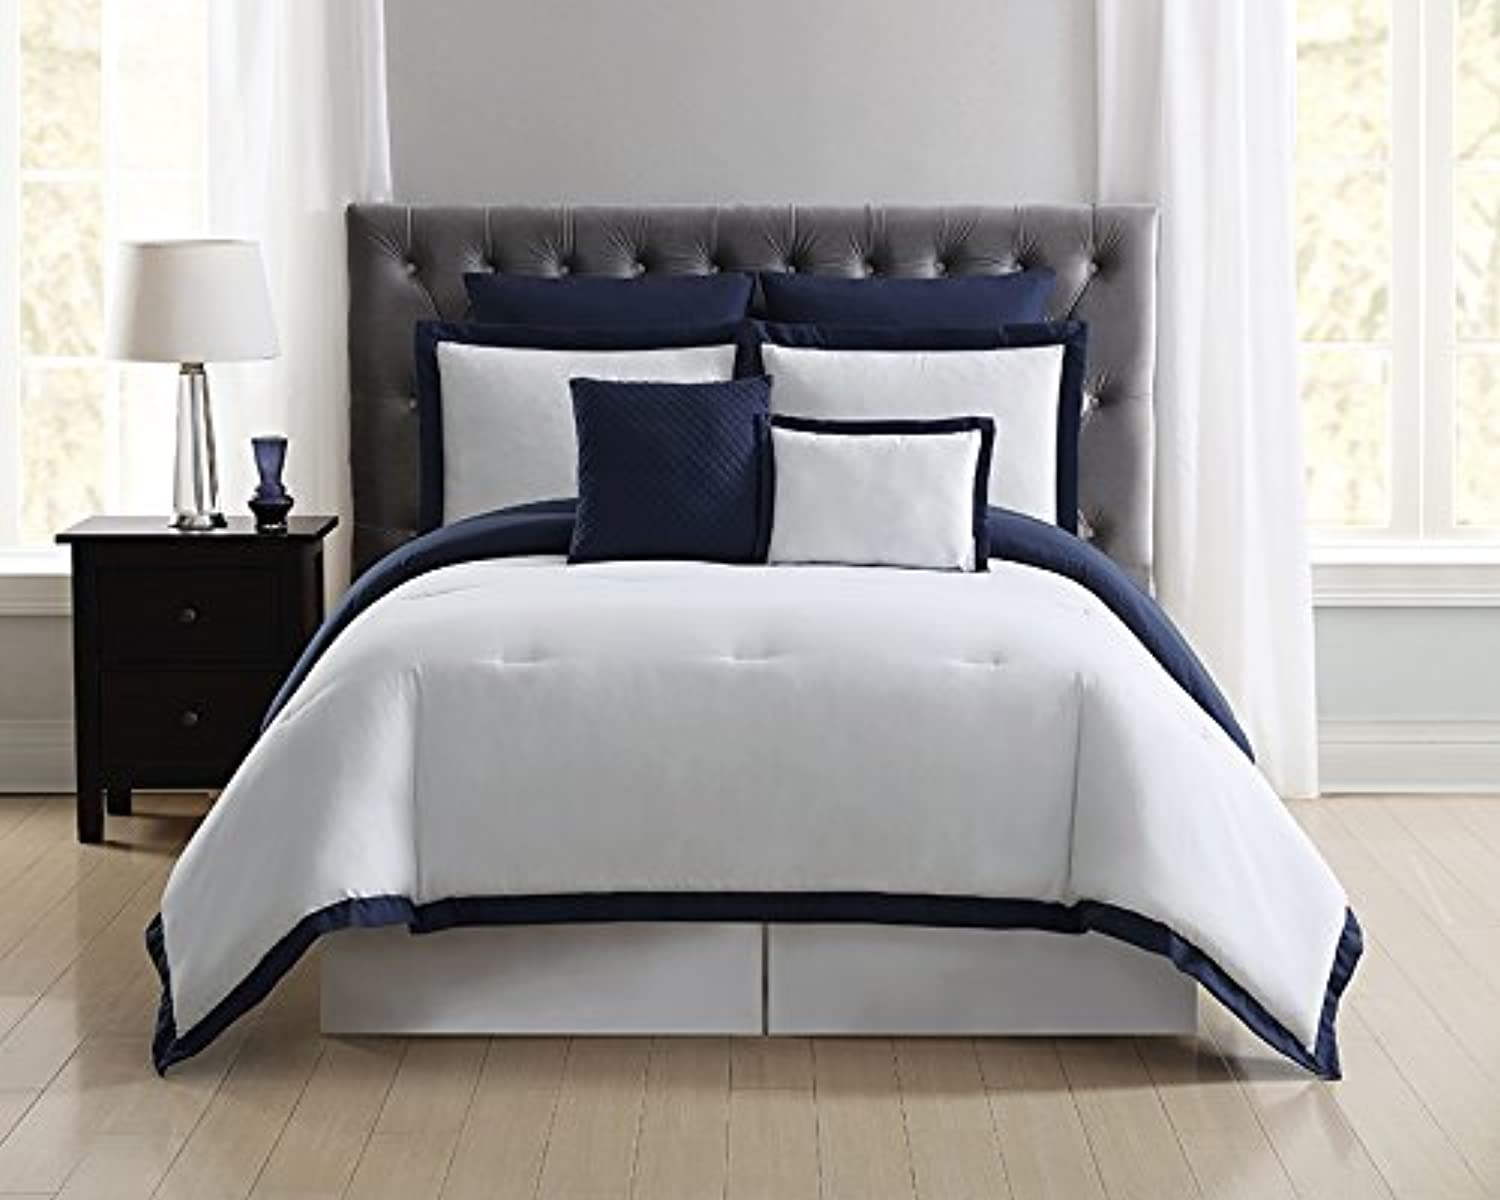 Truly Soft Everyday Hotel Border Comforter Sets 7 Piece, King, White Navy